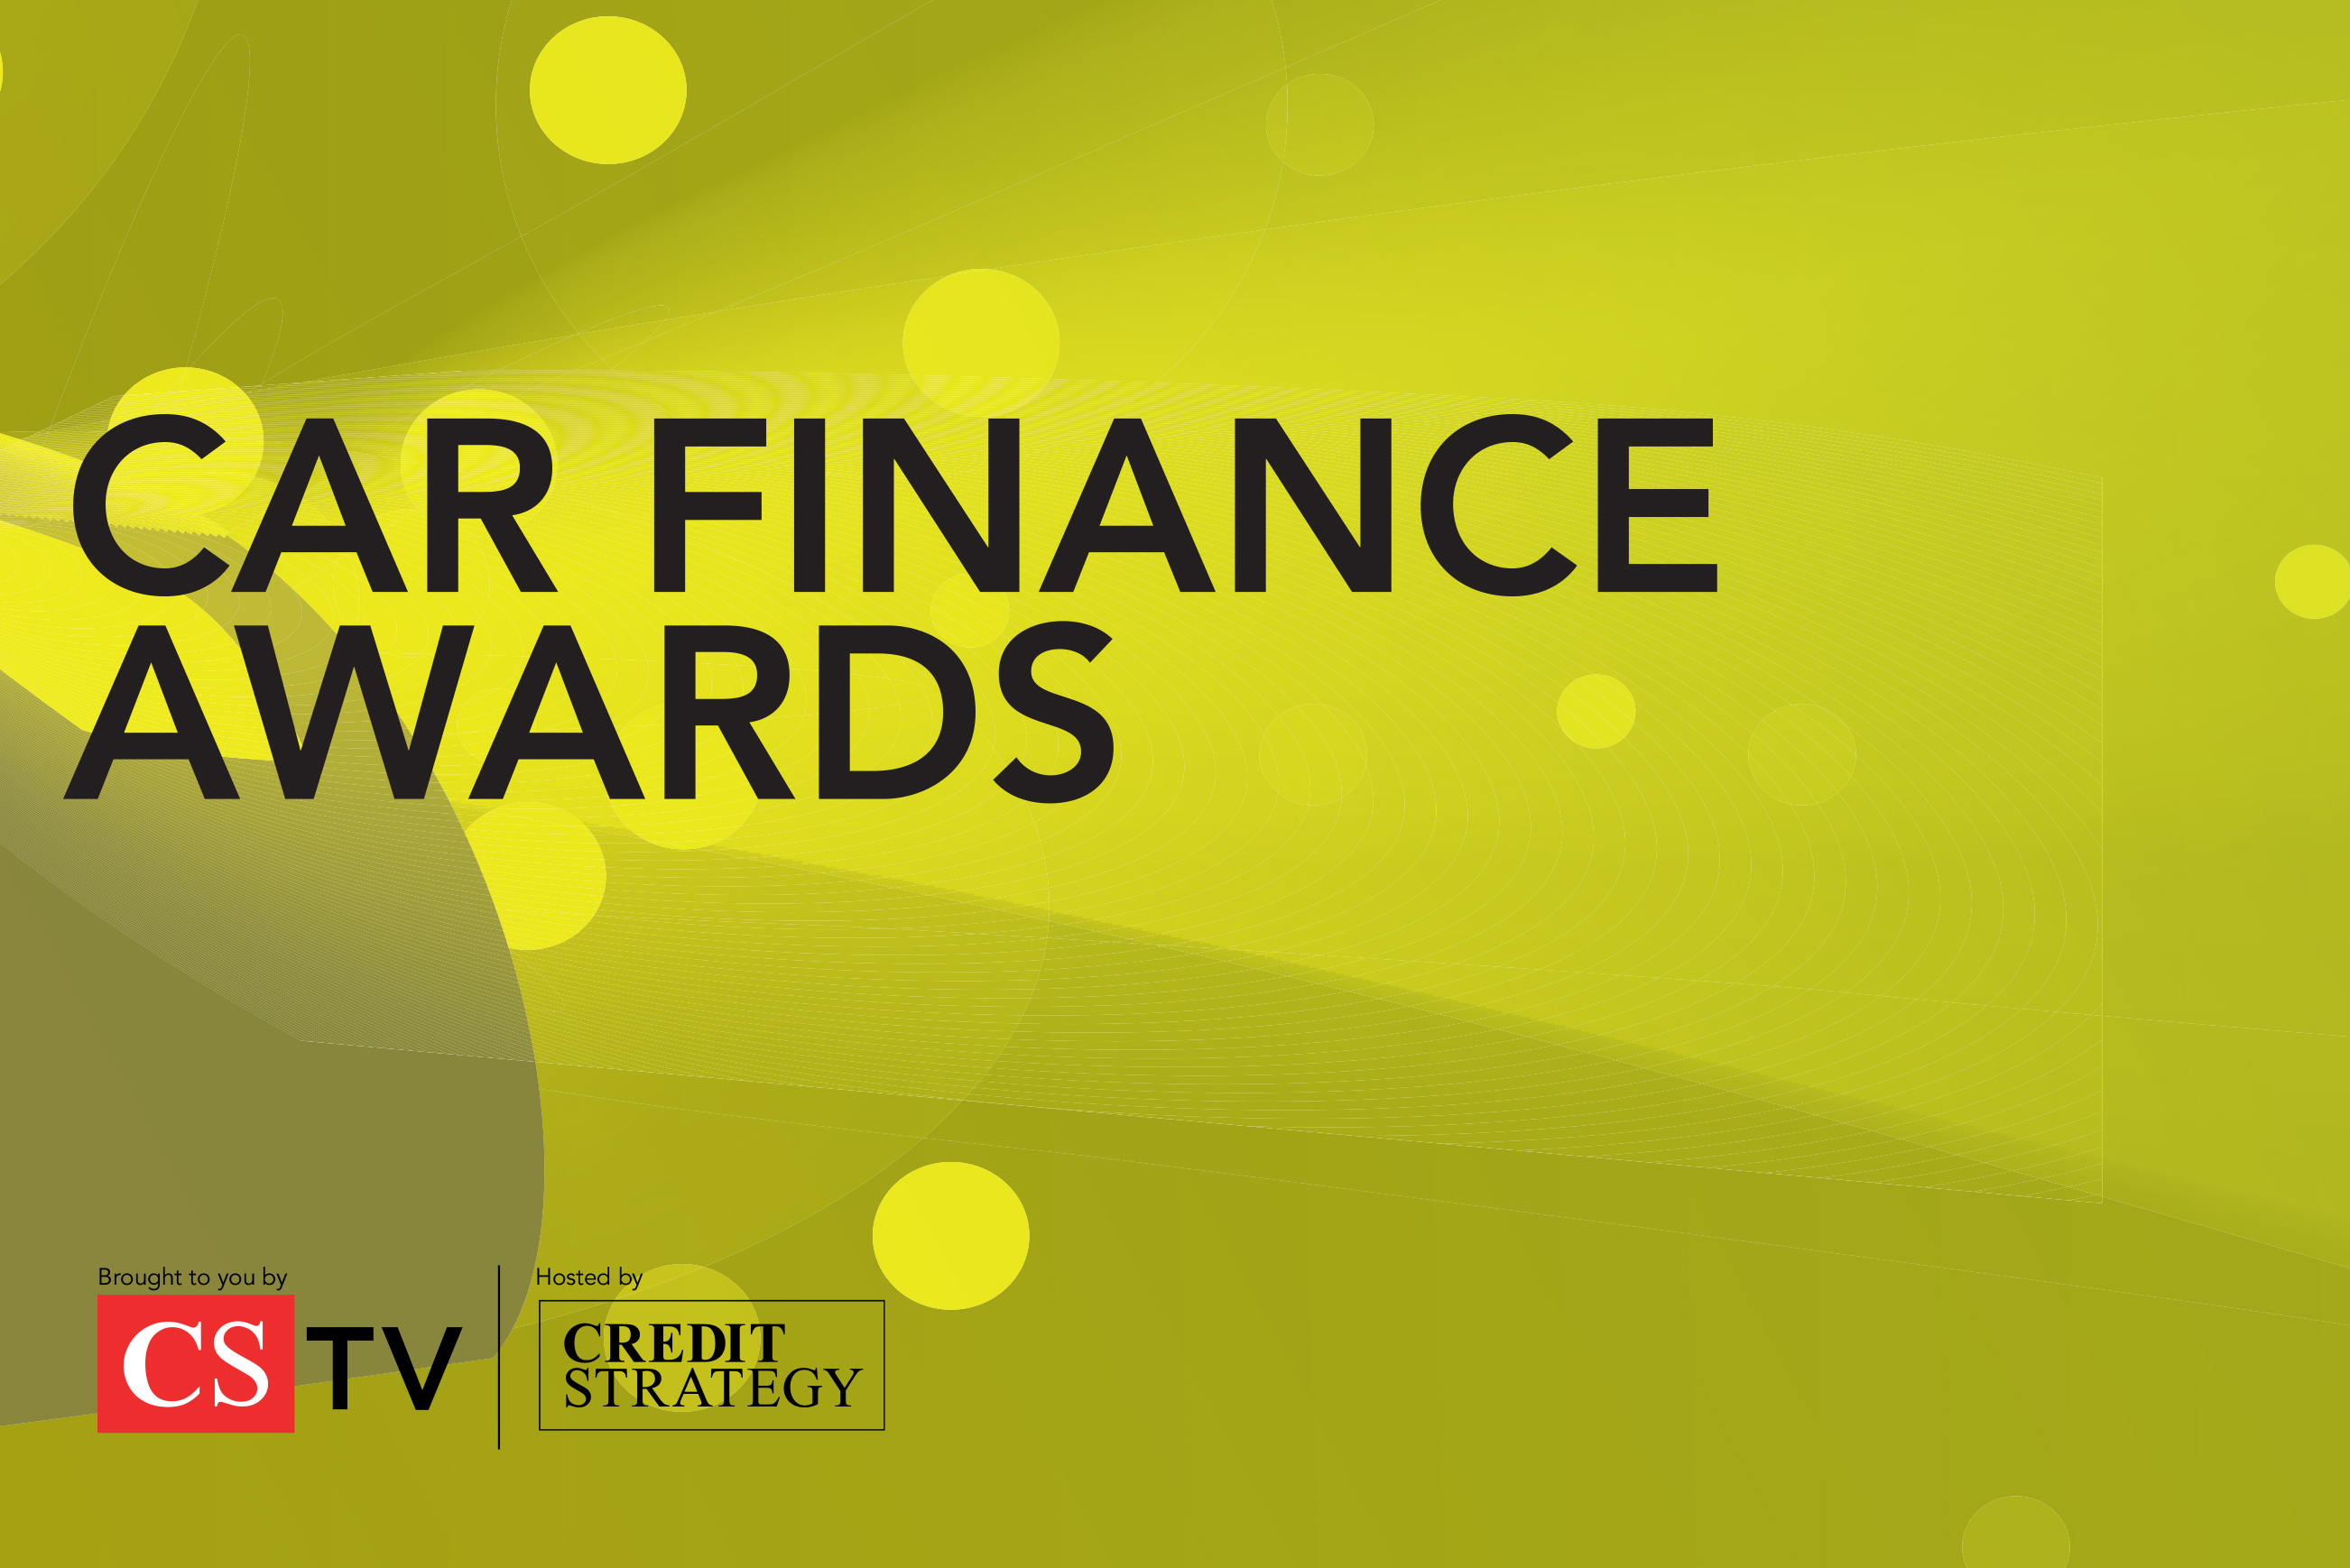 Car Finance Awards 2021